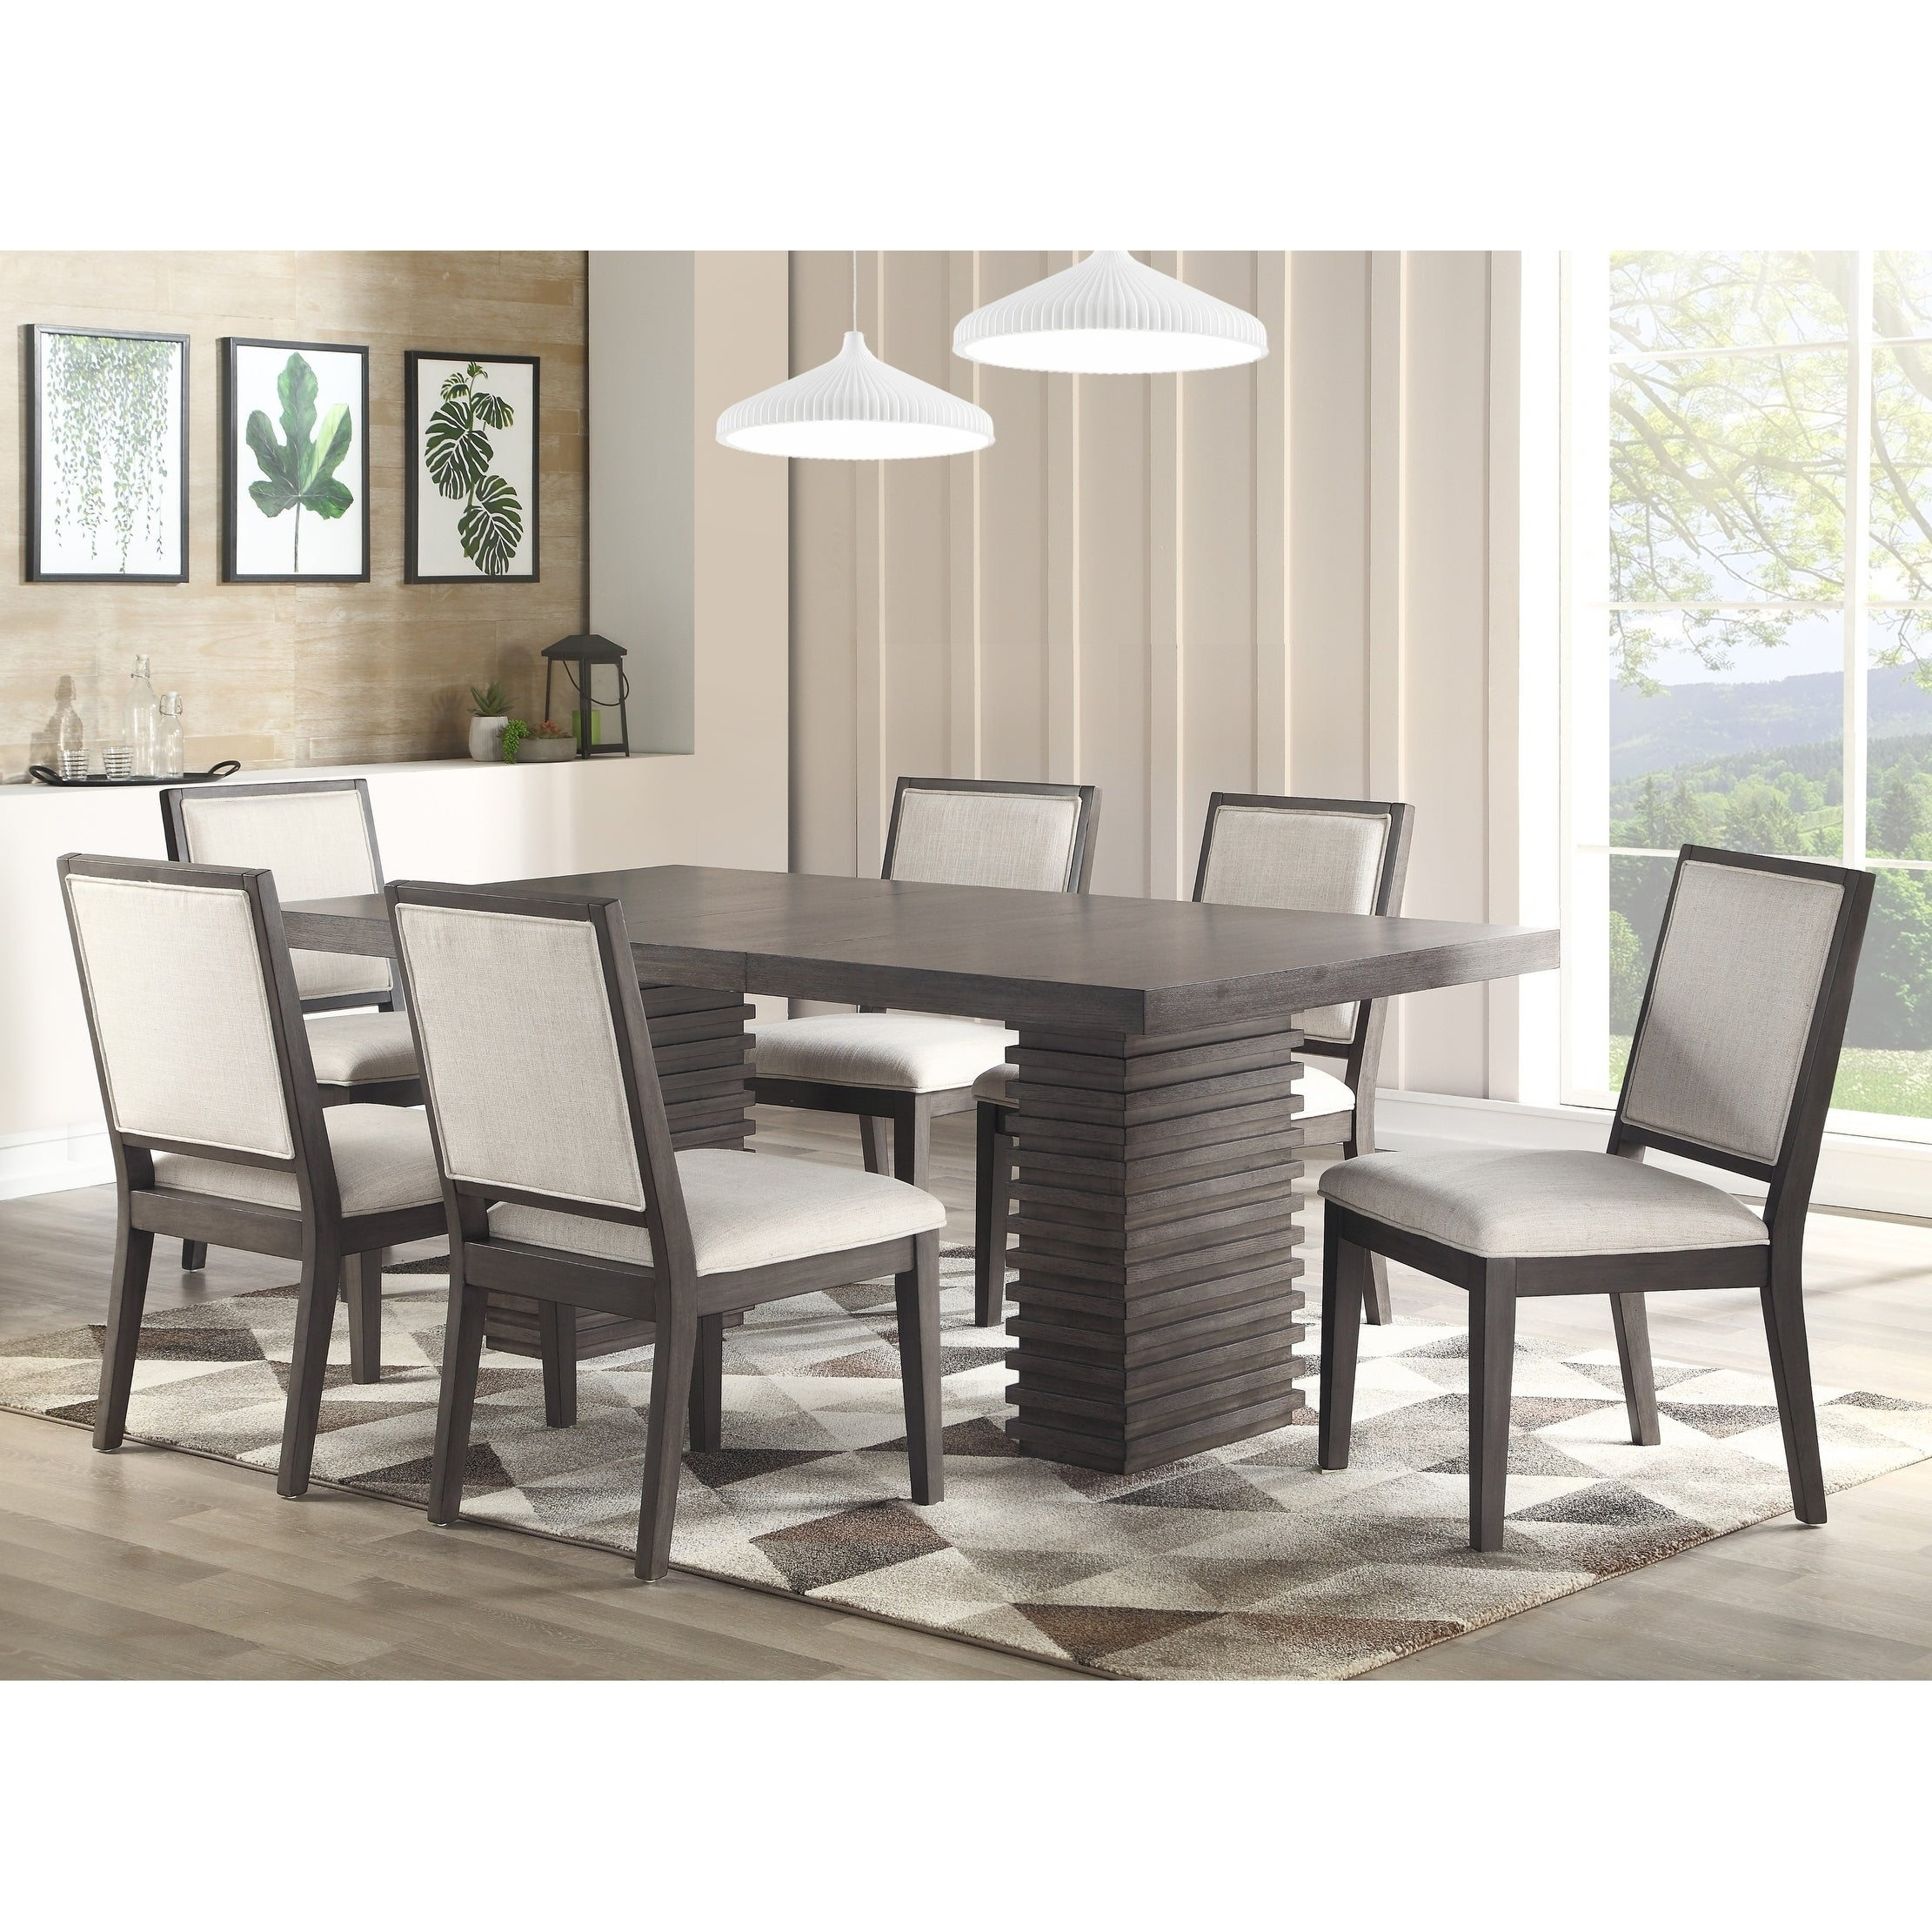 Favorite Buy 6 Piece Sets Kitchen & Dining Room Sets Online At Overstock With Osterman 6 Piece Extendable Dining Sets (Set Of 6) (#4 of 20)